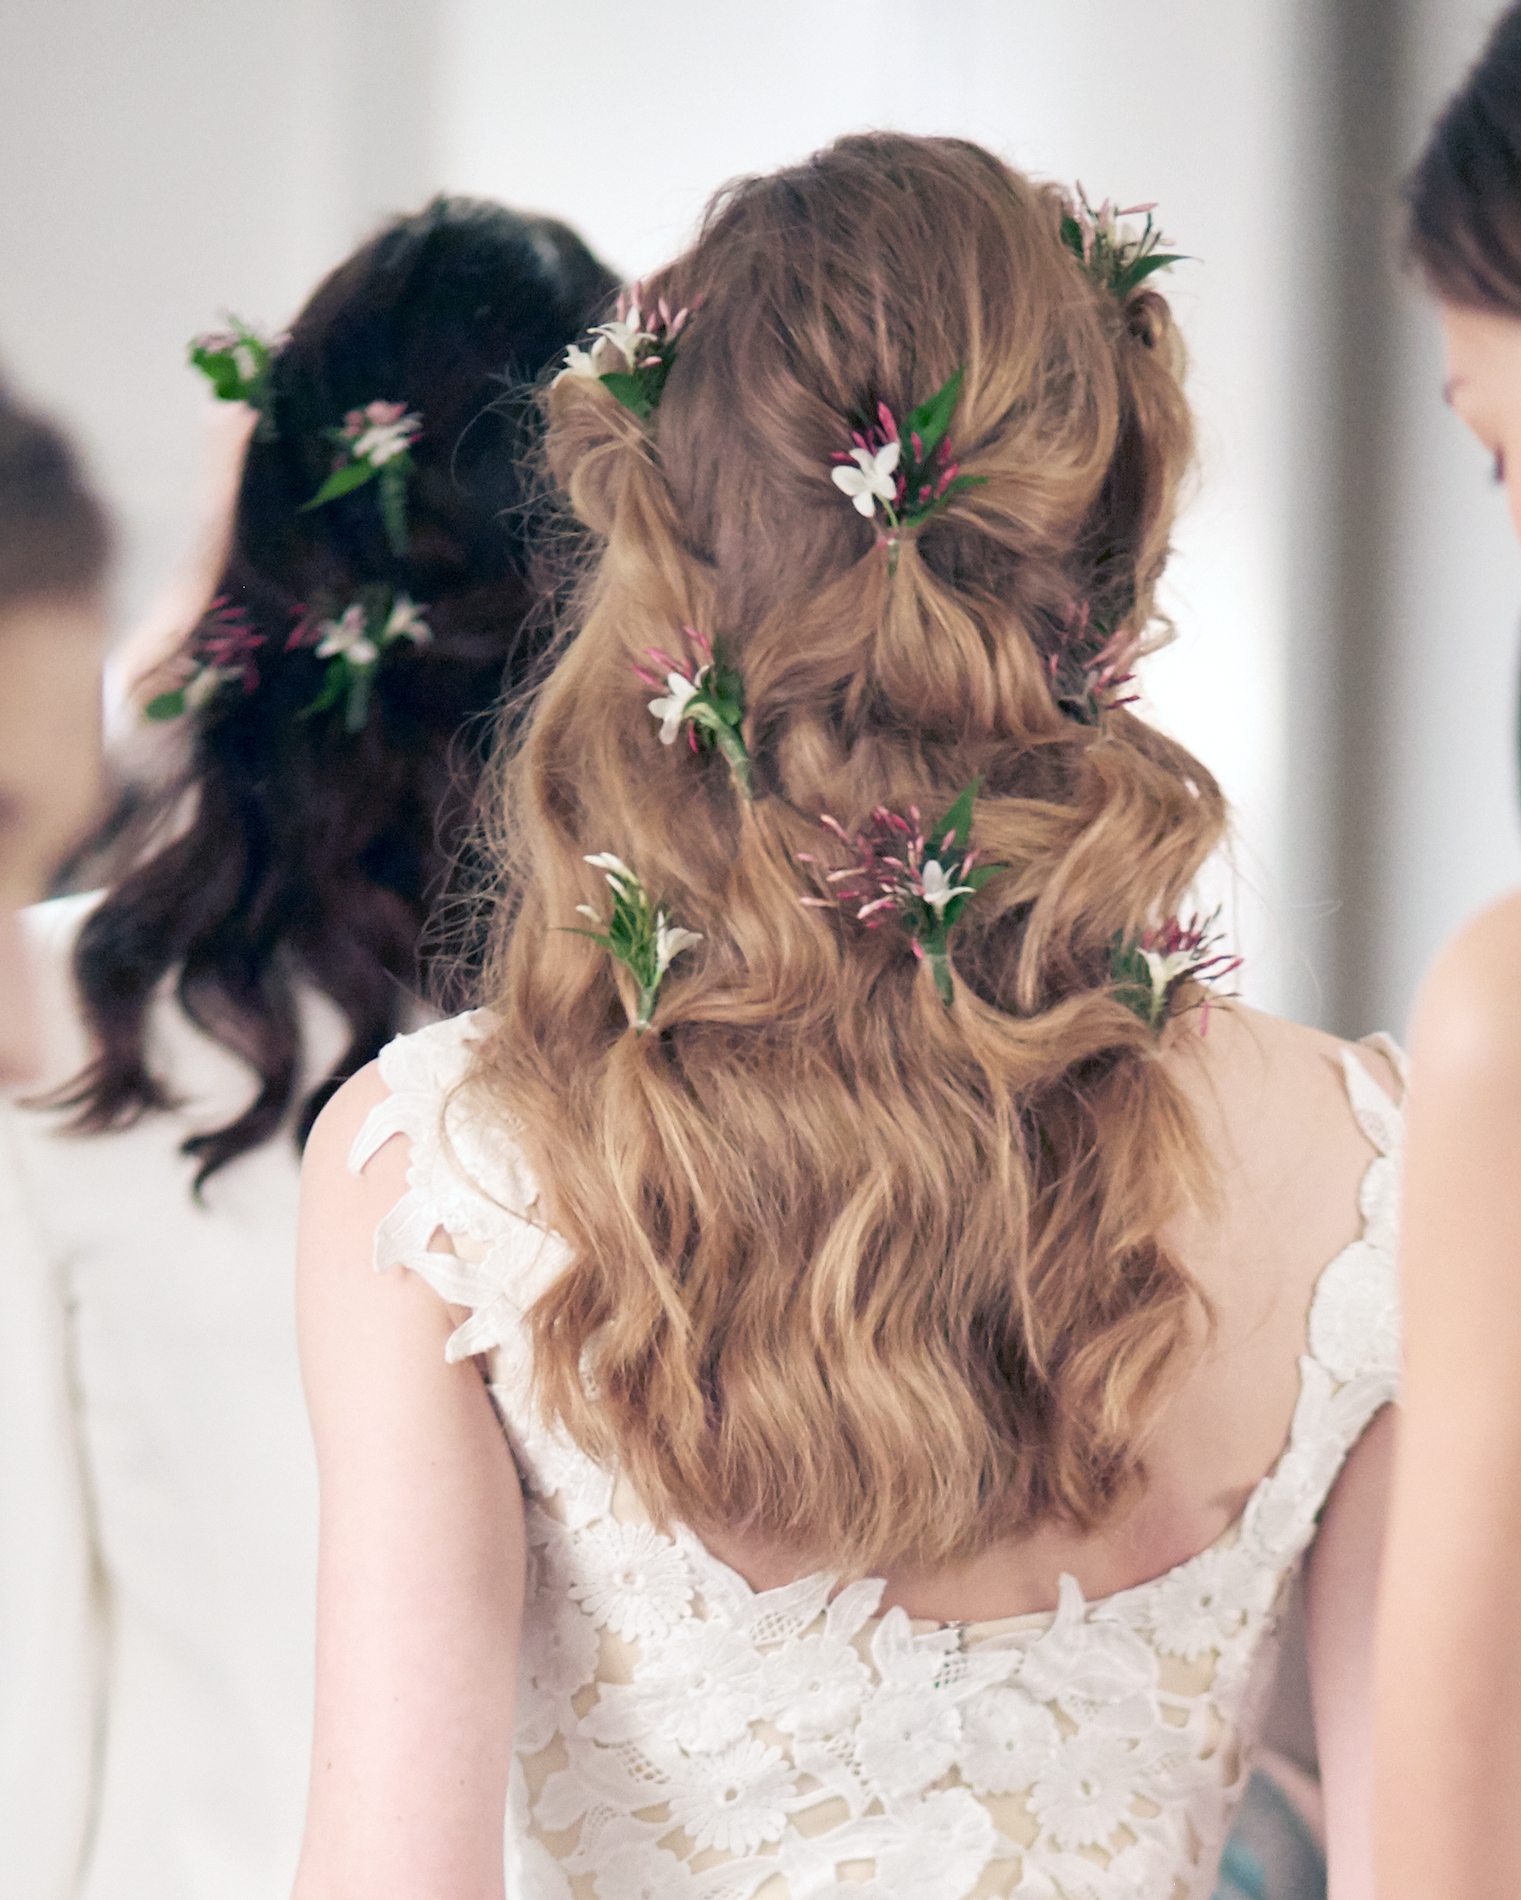 Wedding Hairstyles Ideas: 5 Wedding Hairstyle Ideas From The Spring 2016 Bridal